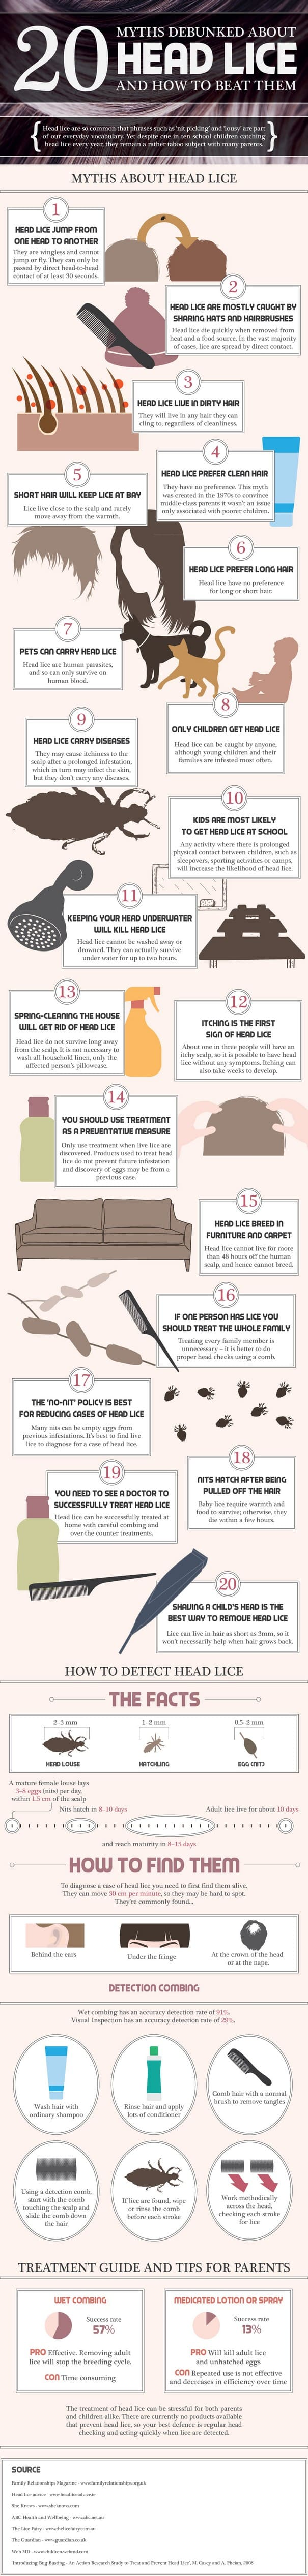 20 Facts About Headlice Infographic